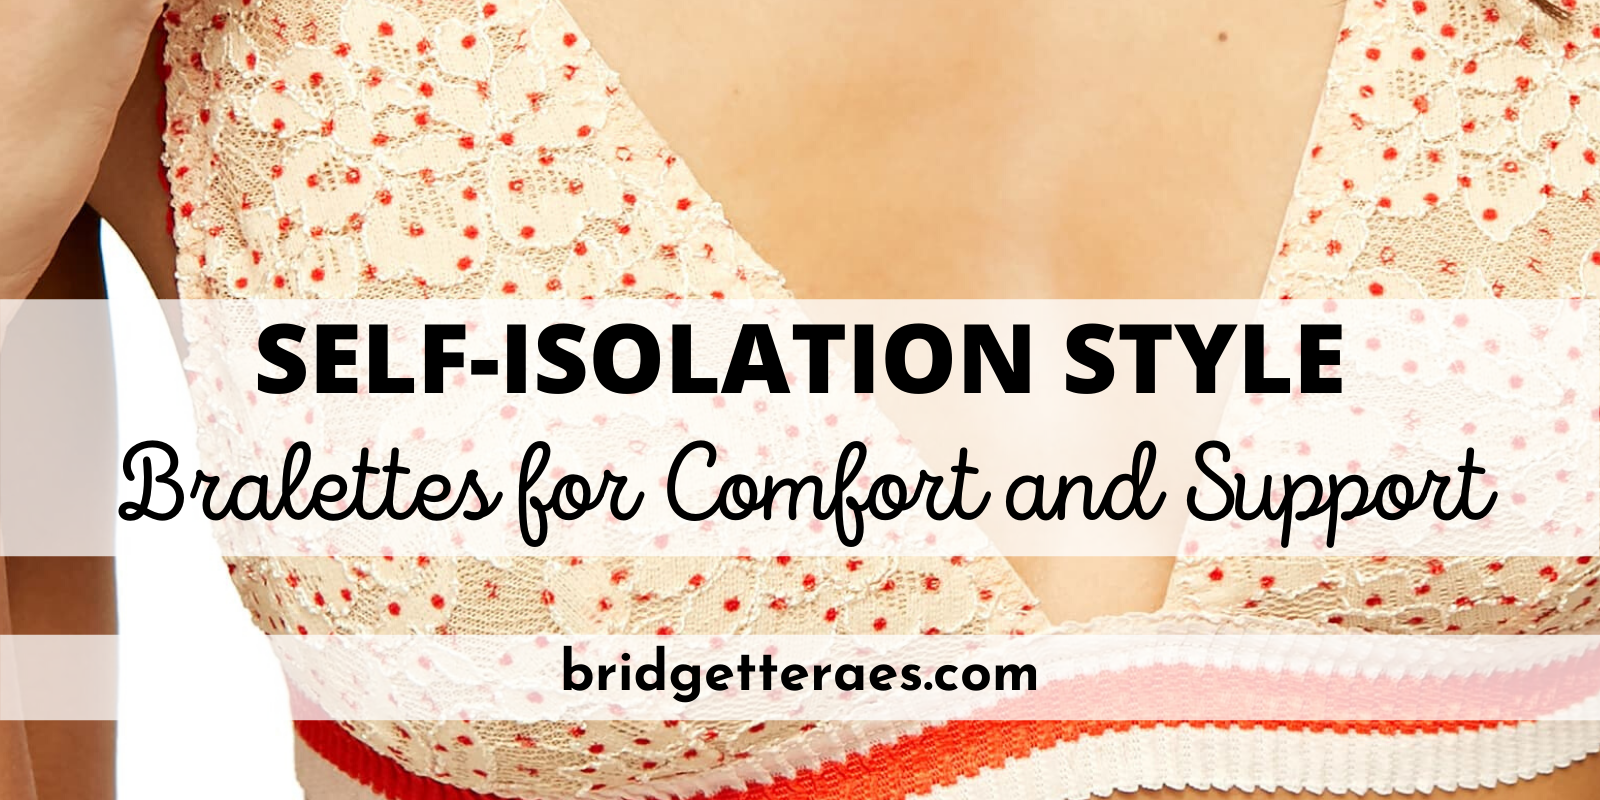 Self-Isolation Style: Bralettes for Comfort and Support